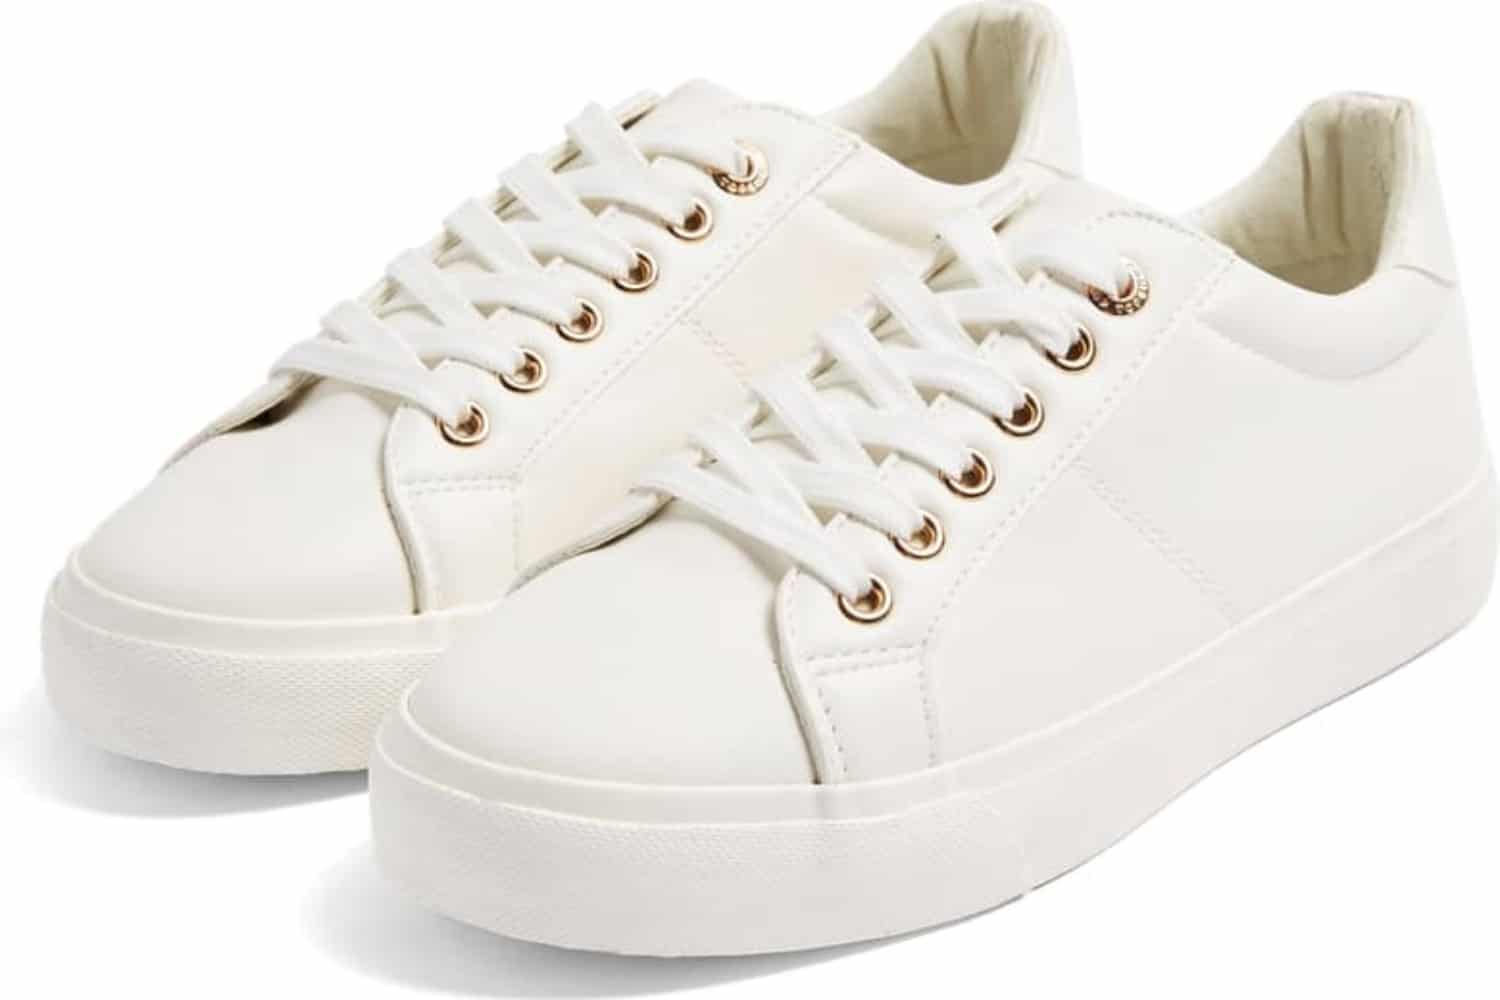 8 Cute White Sneakers We Love - Daily